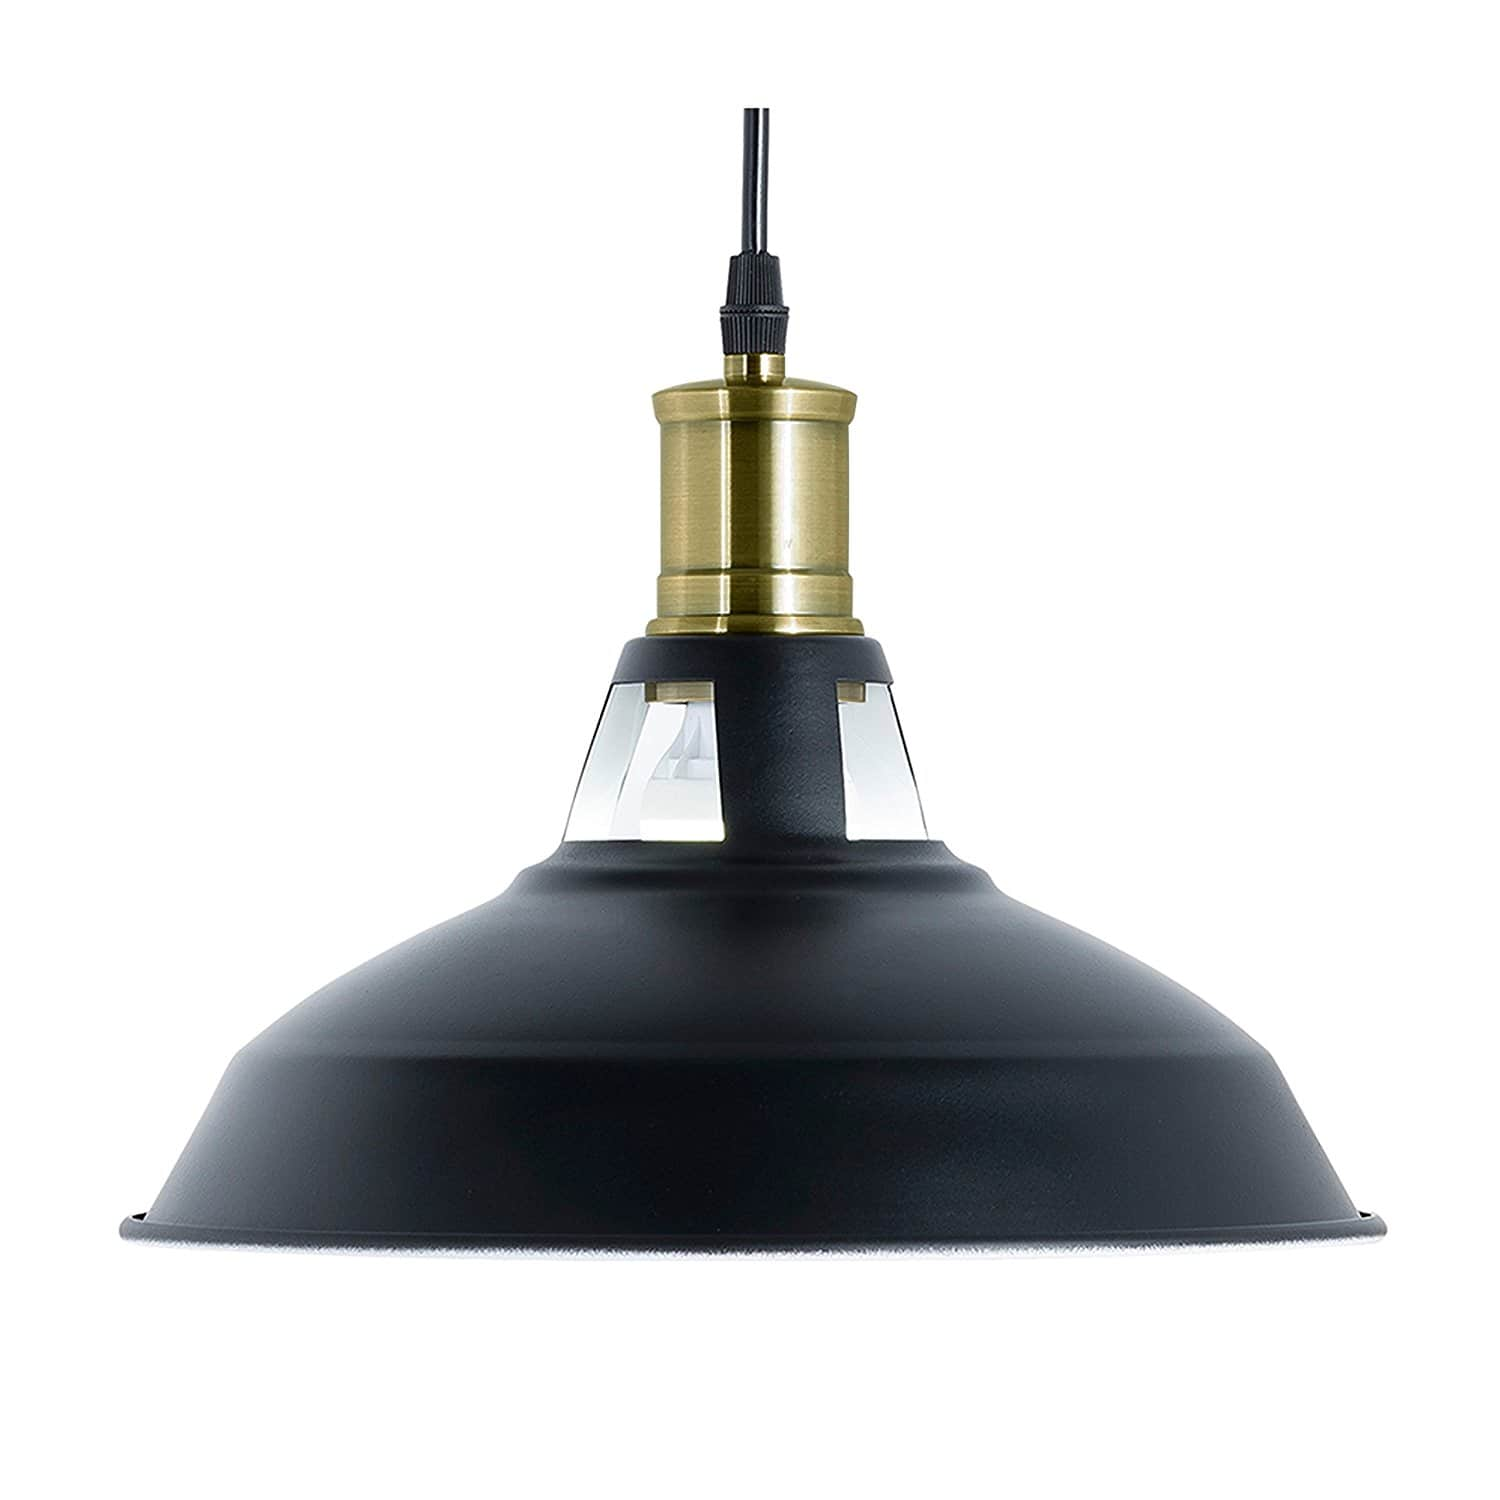 Light Society Danica Pendant Light $19.71 with free shipping